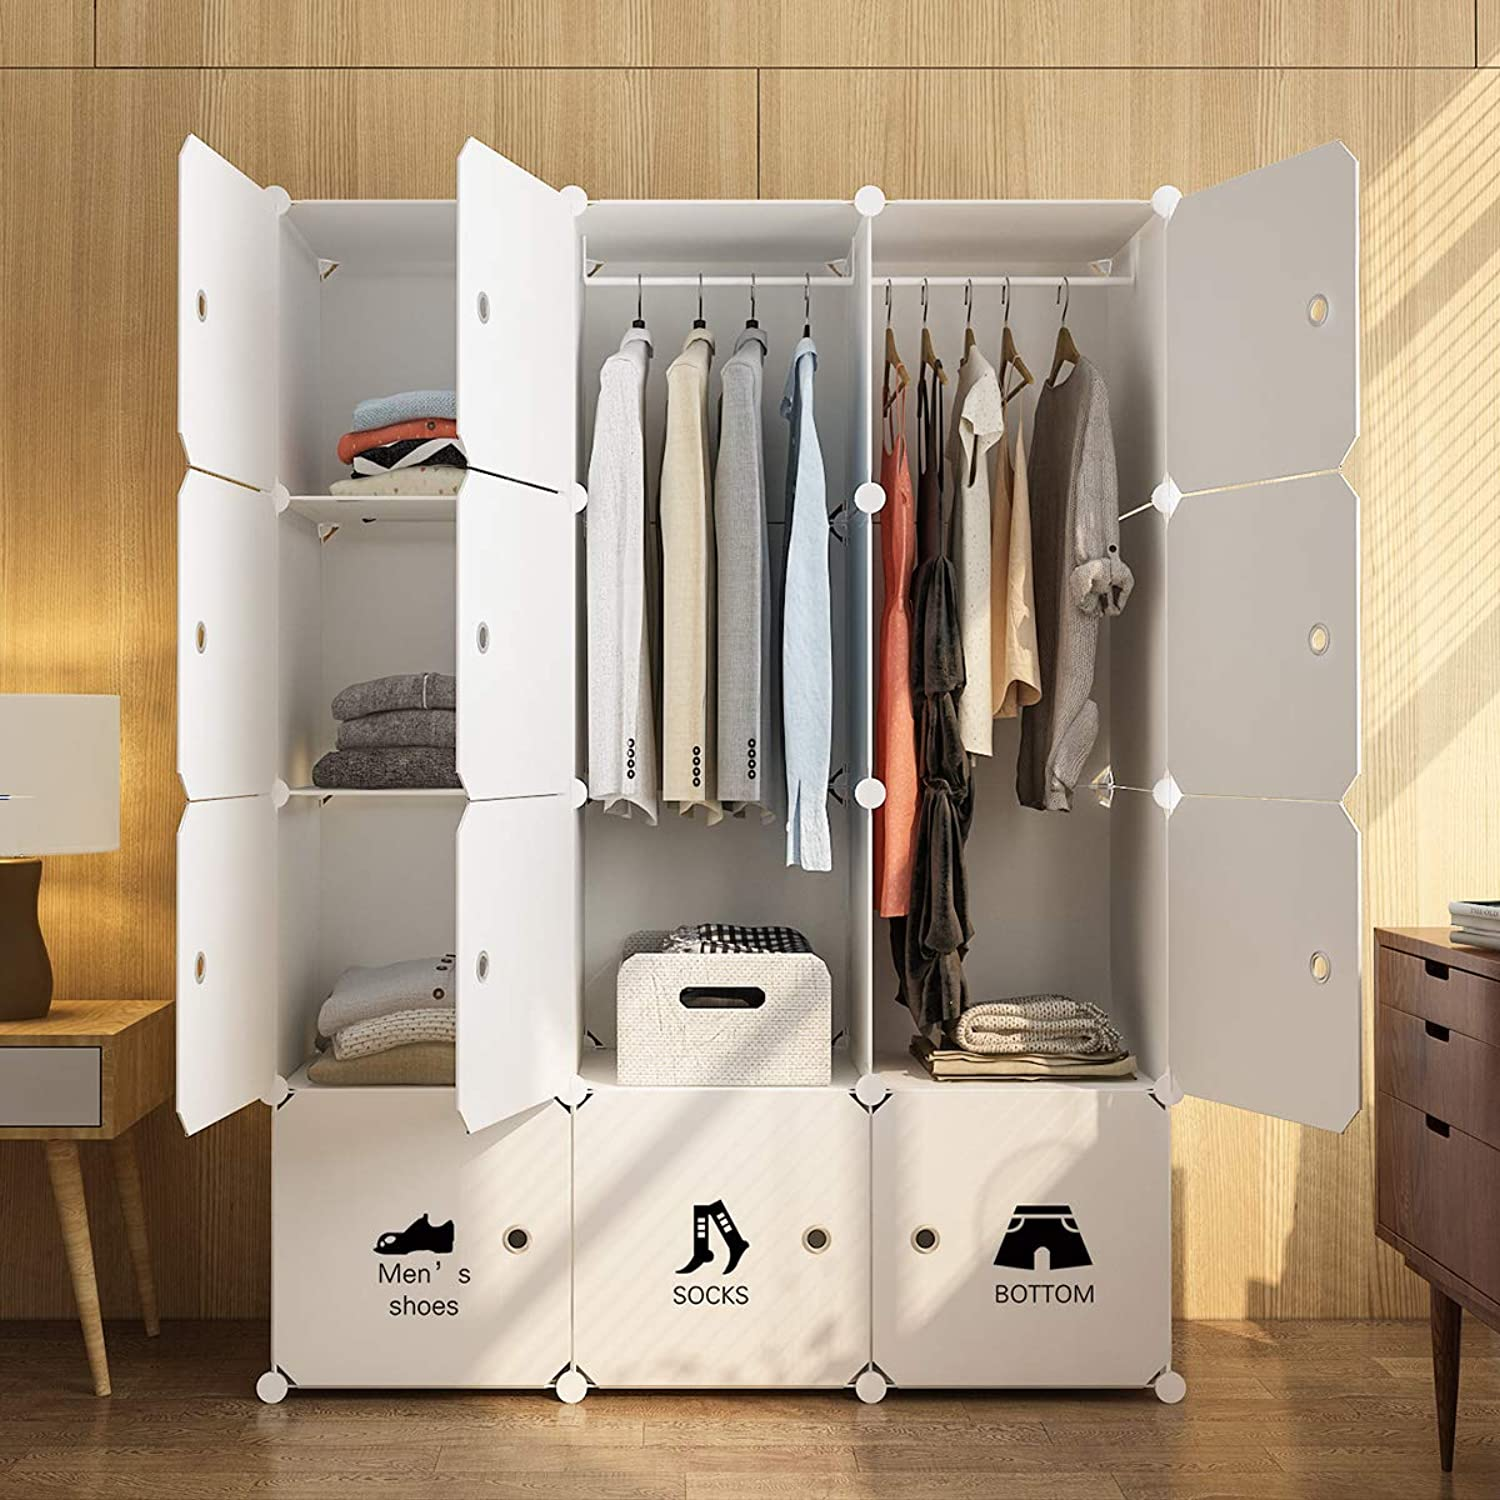 MAGINELS Portable Wardrobe Closet Armoire Cube Storage Organizer for Clothes Bedroom with Drawer White (6 Cubes & 2 Hanging Section FBA)